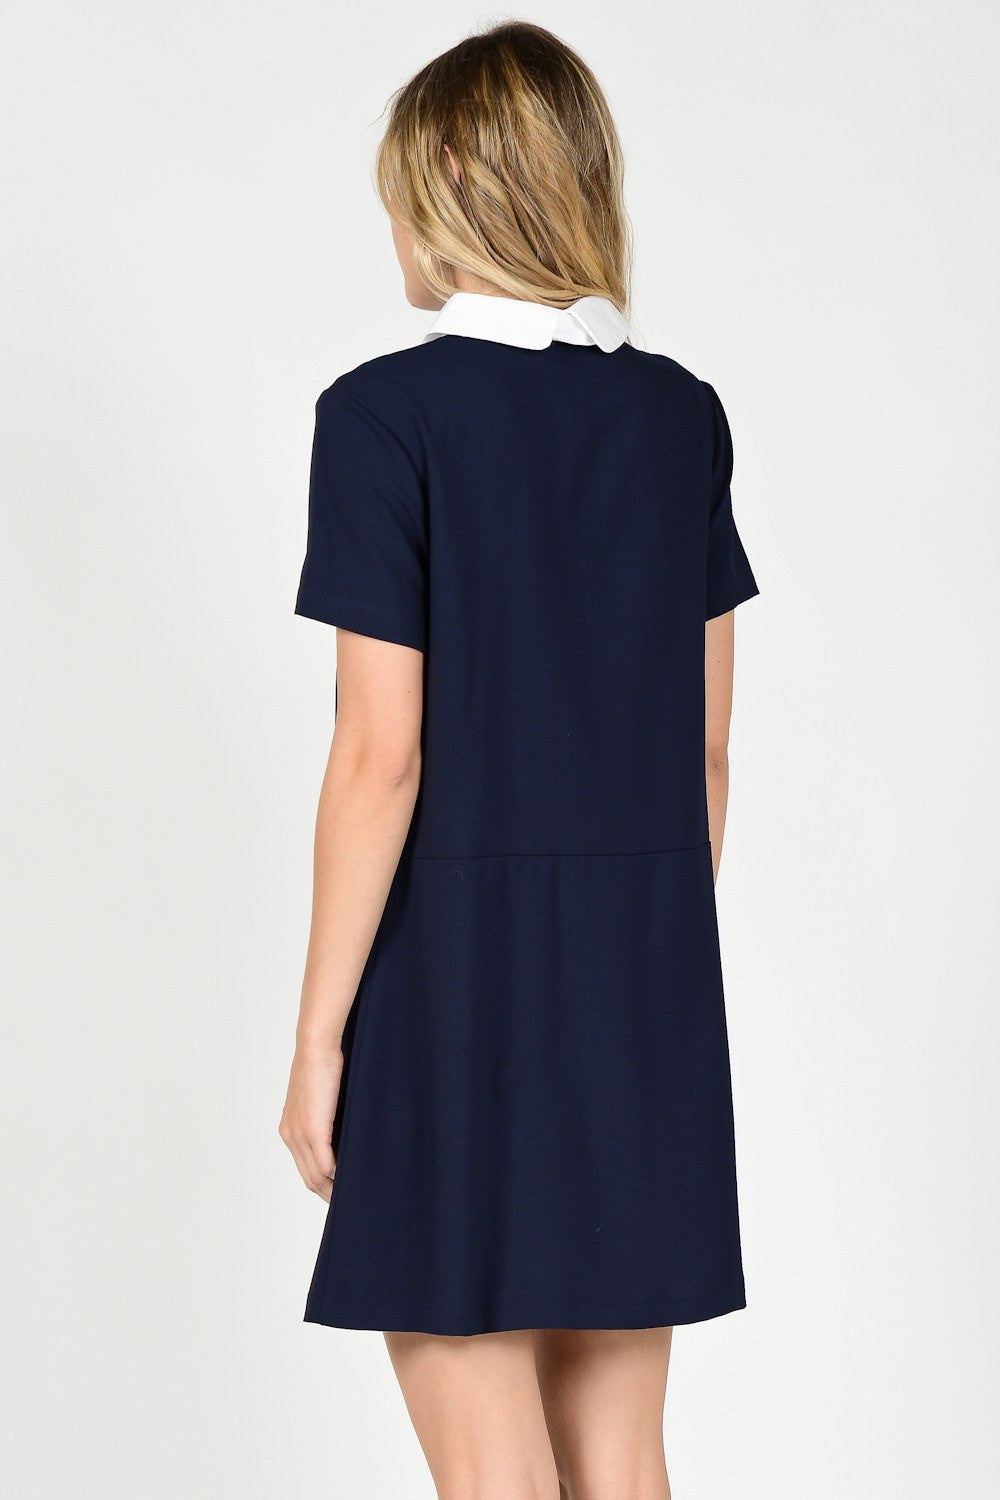 Collared Short Sleeve Dress